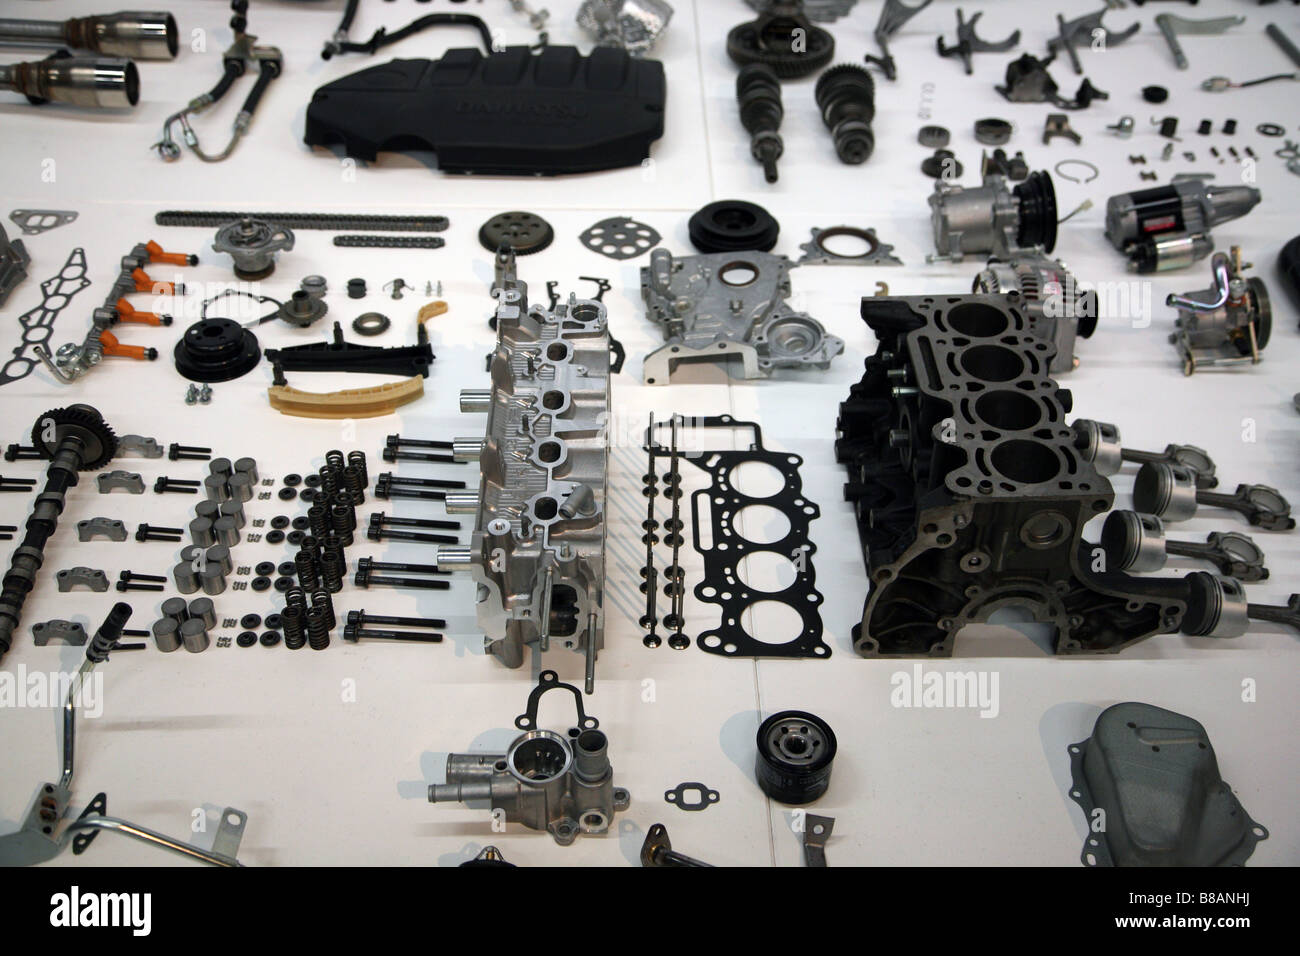 Engine Components Stock Photos & Engine Components Stock Images - Alamy